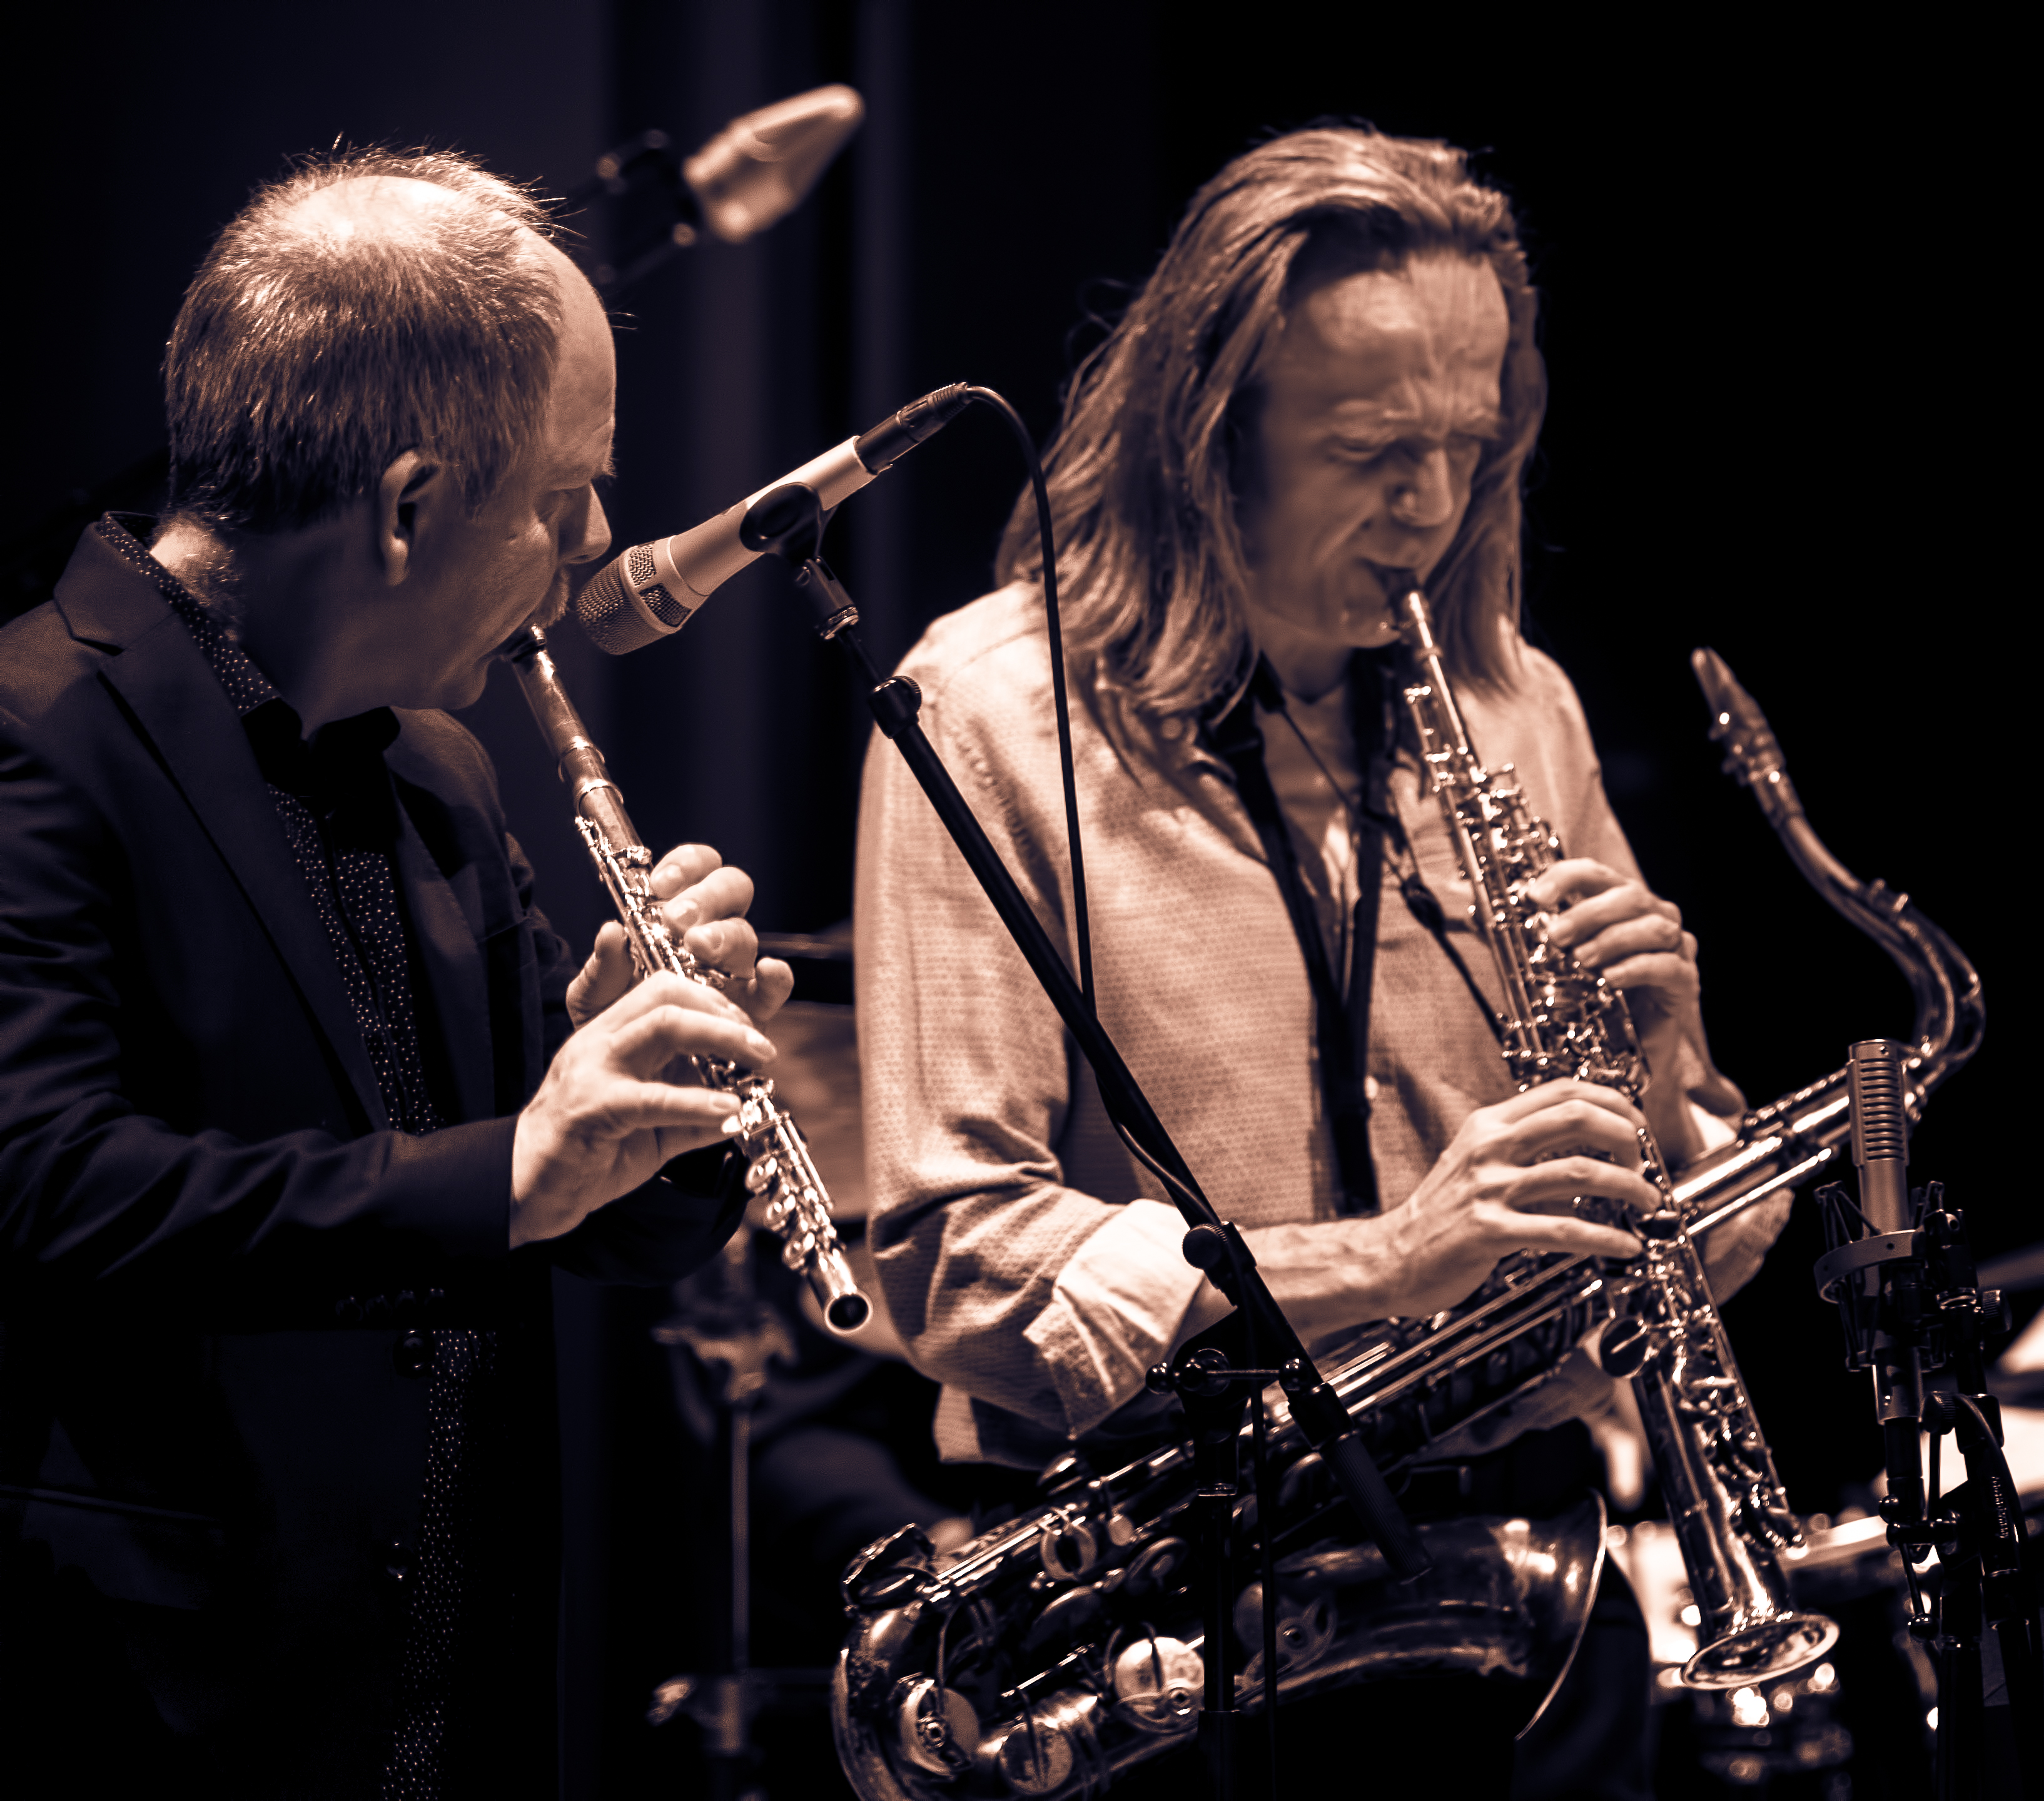 Bart Platteau and Marc Mommaas with the Amina Figarova Sextet At The Musical Instrument Museum (MIM) In Phoenix